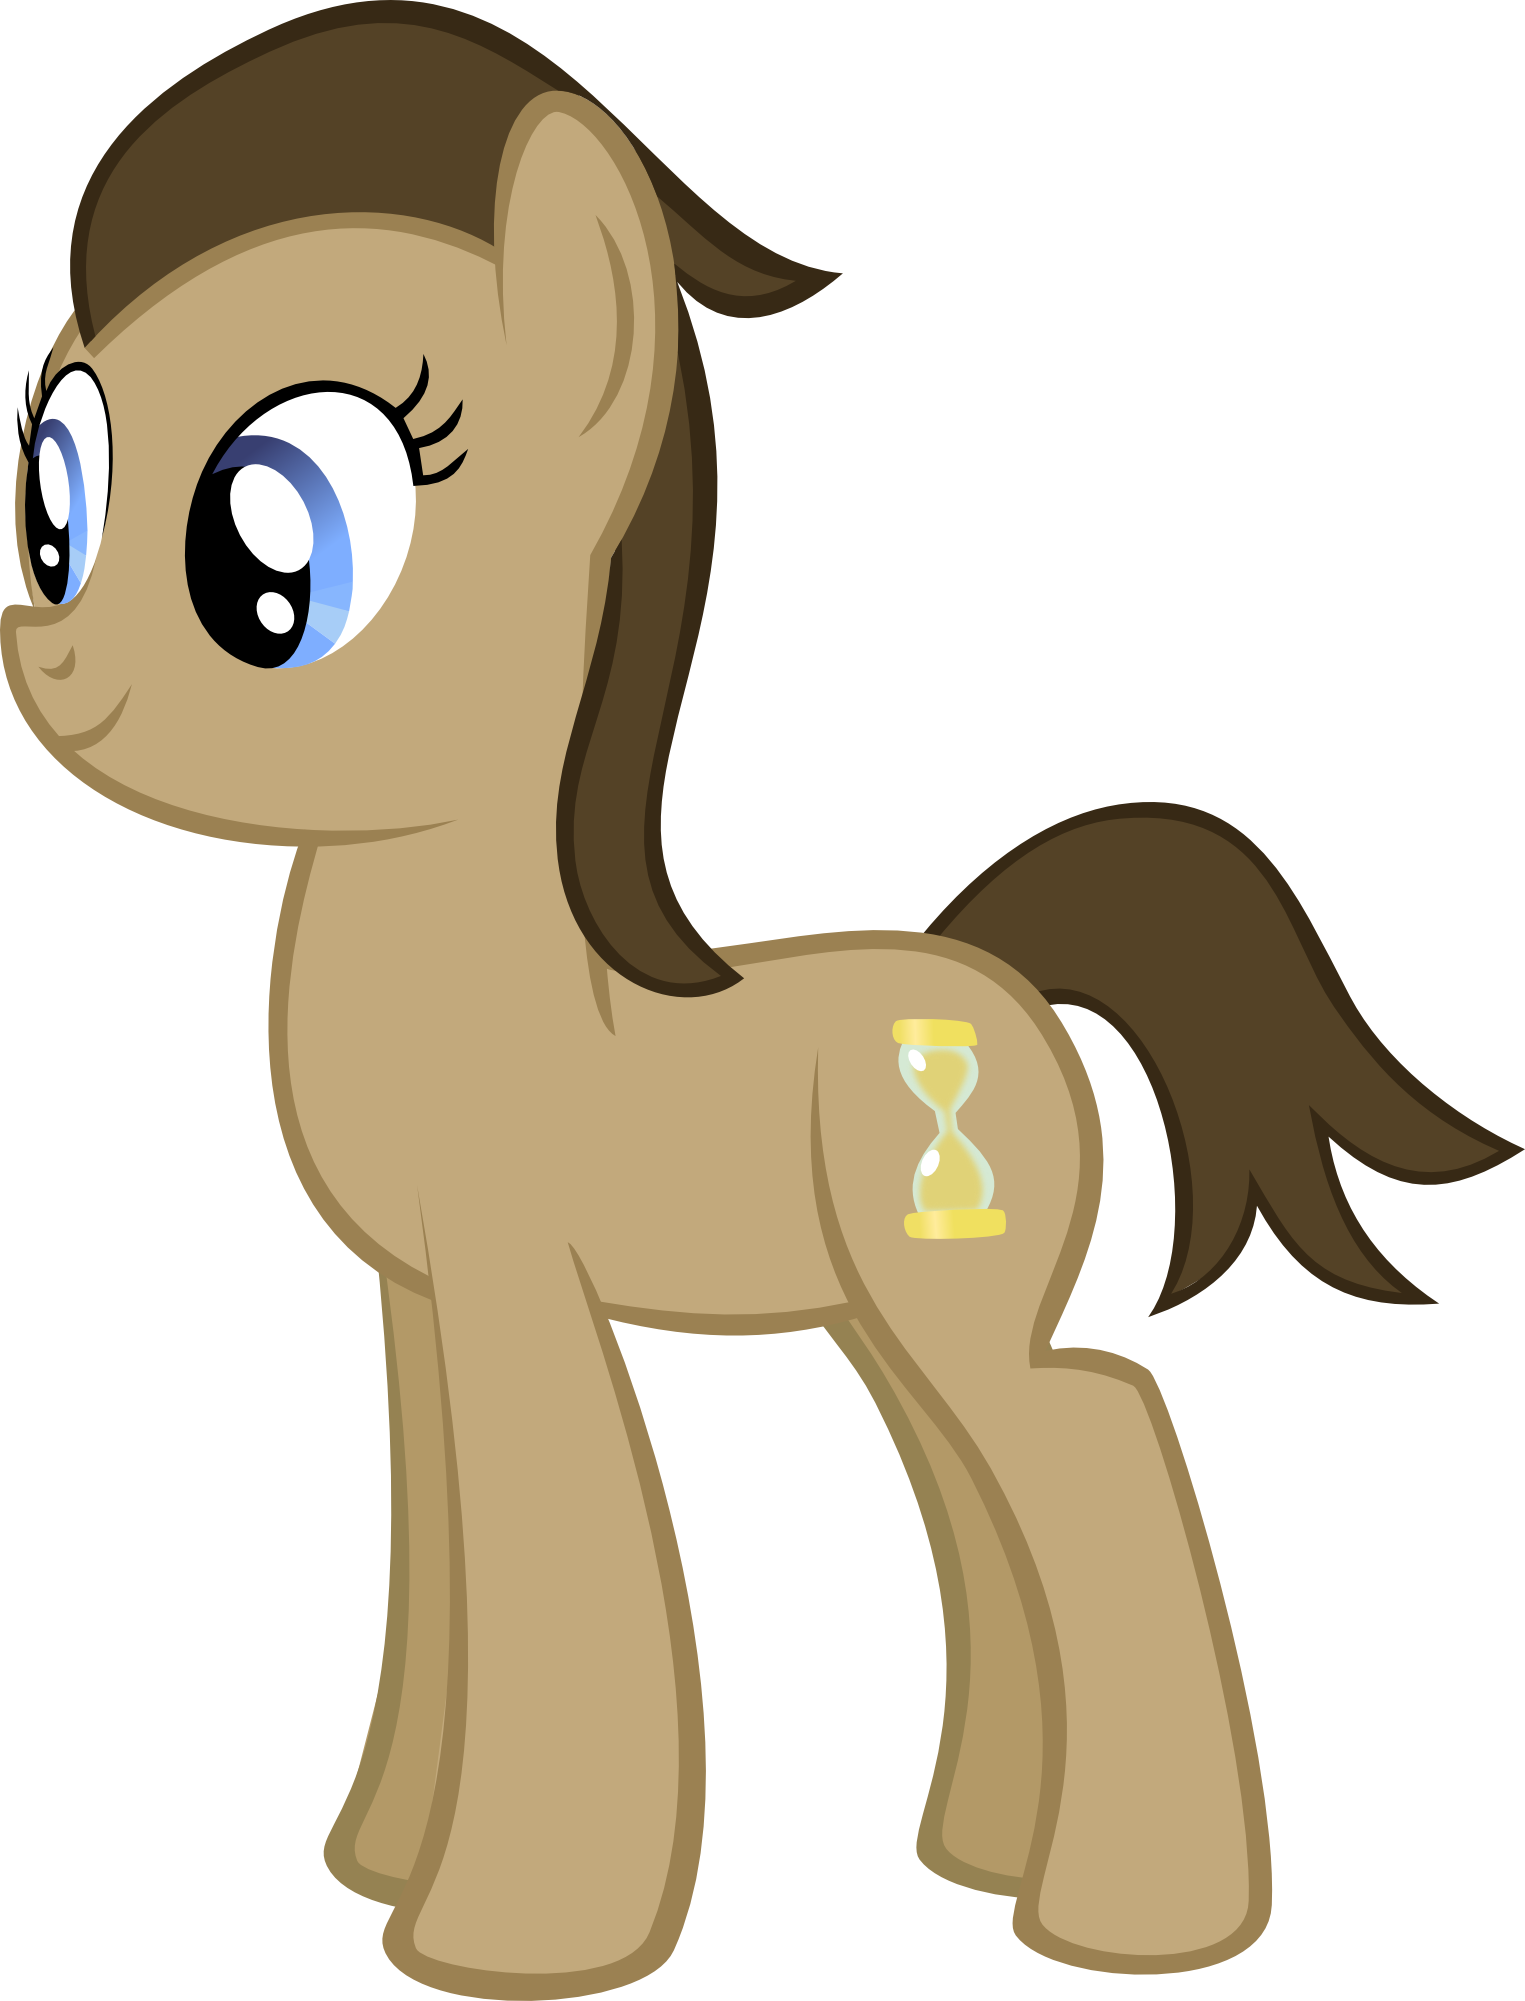 Doctress Whooves My Little Pony Friendship Is Magic Know Your Meme The stare master.1 in the episode one of the young fillies called scootaloo a chicken. doctress whooves my little pony